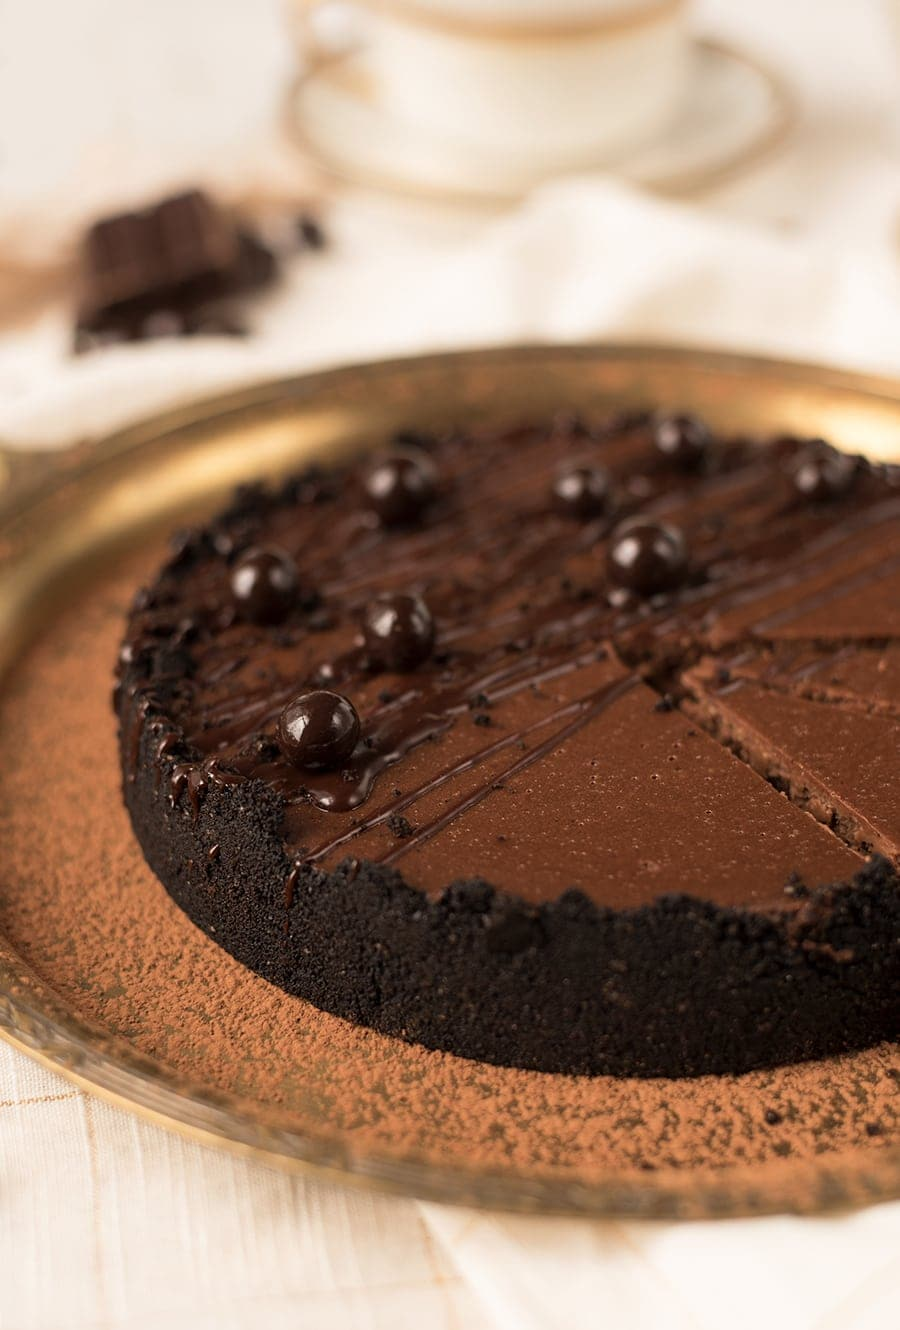 Instant Pot Chocolate Espresso Cheesecake 8753 Web - Instant Pot Chocolate Cheesecake with Espresso Beans and Oreo Crust